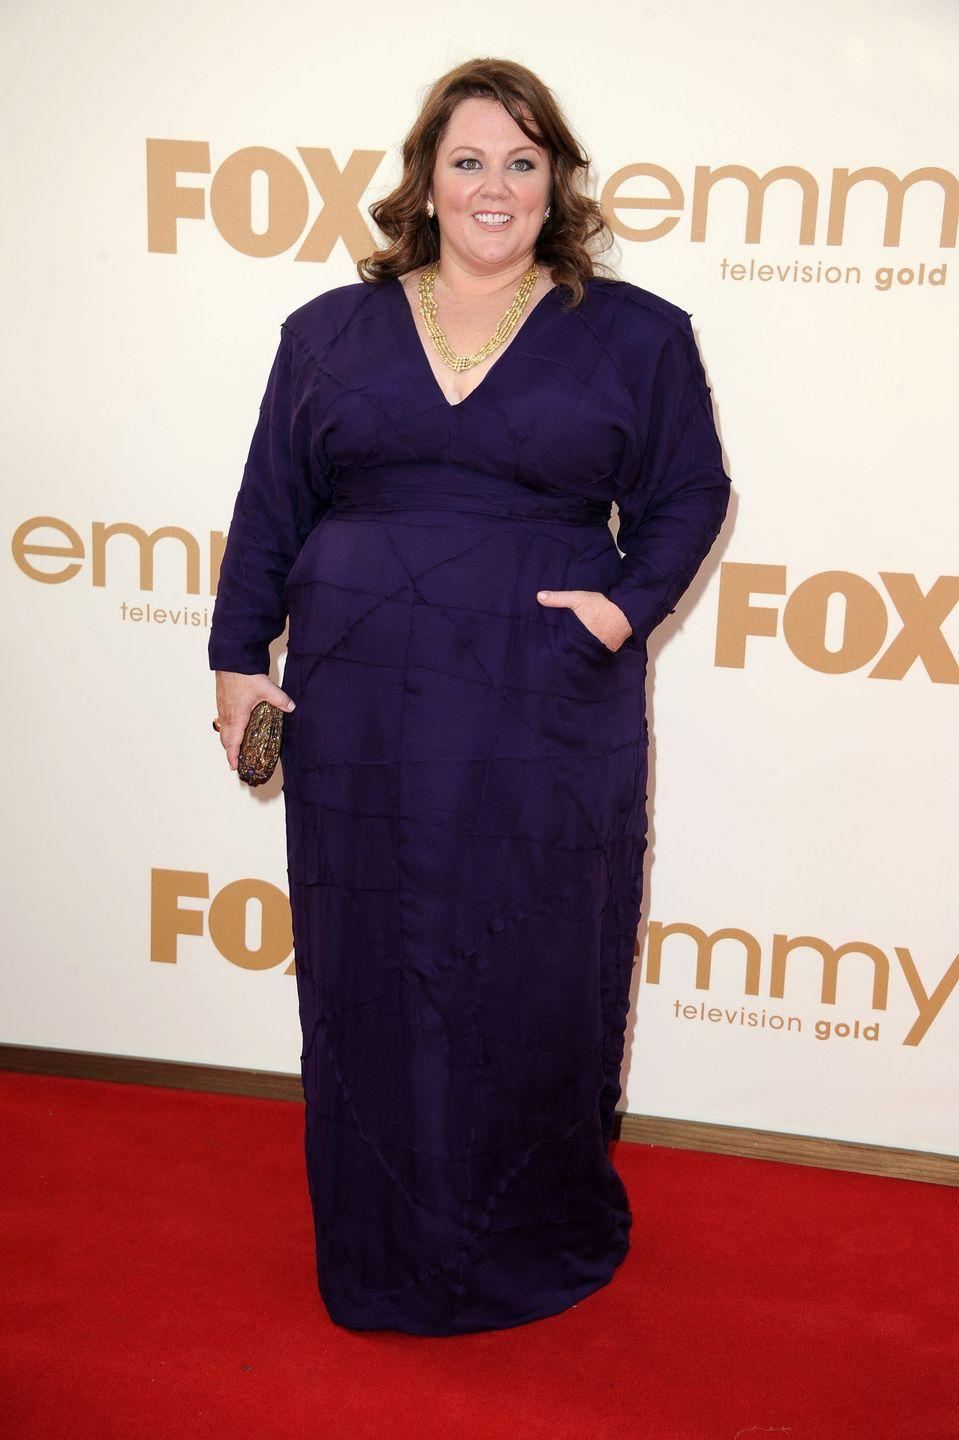 """<p>McCarthy wore this gorgeous purple gown when she won her Emmy for <em>Mike & Molly</em><span class=""""redactor-invisible-space""""> in 2011. </span></p>"""